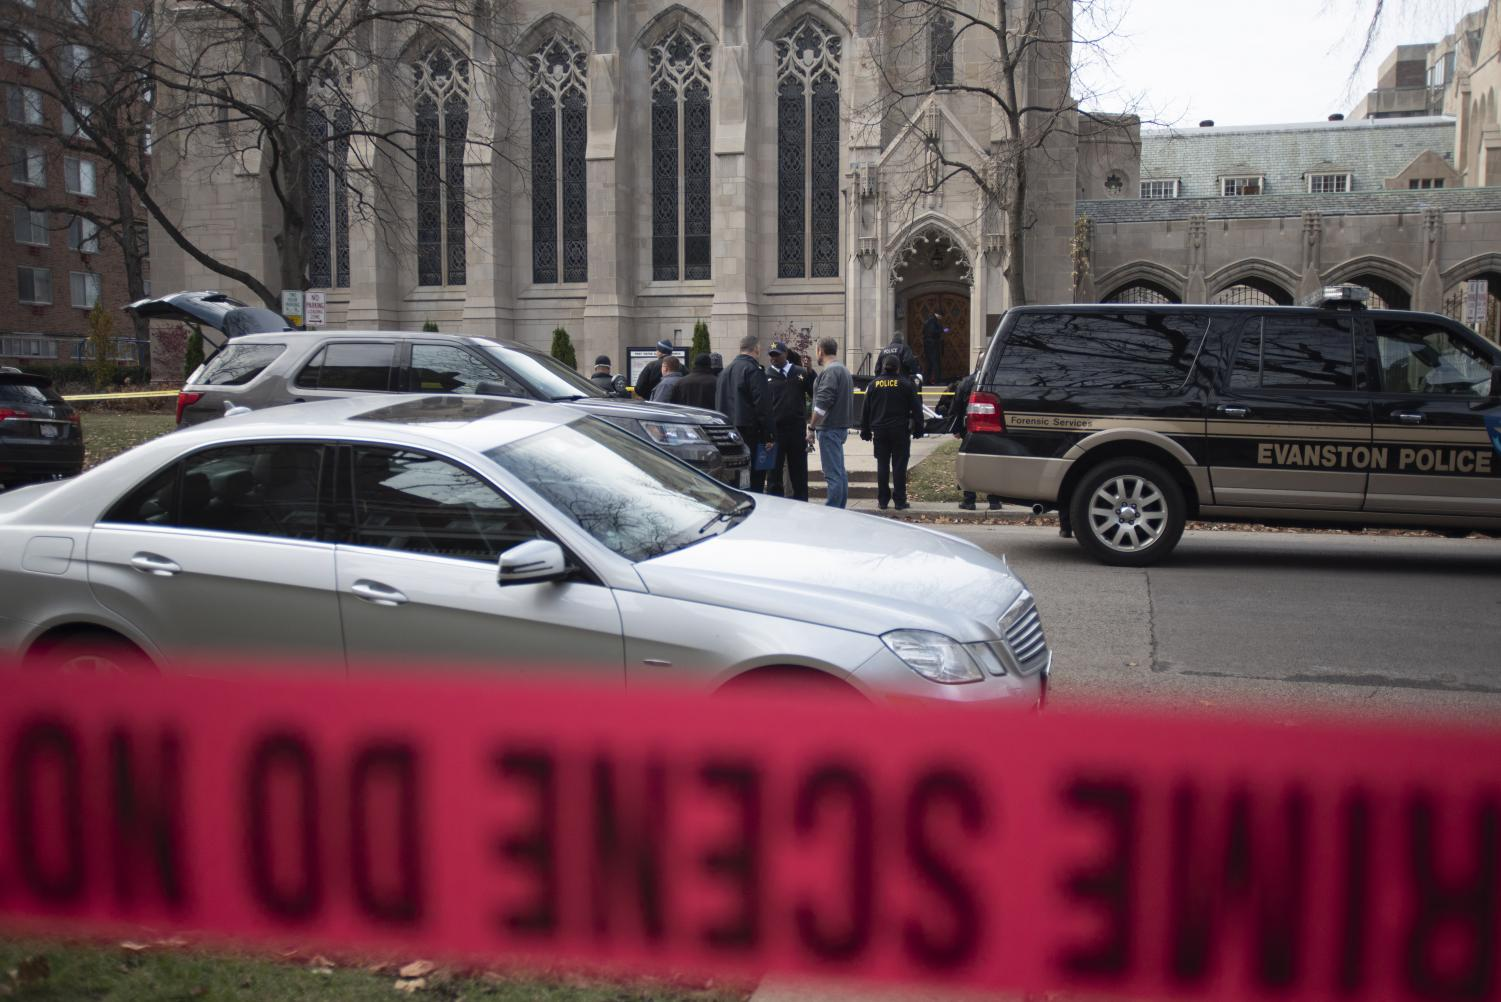 Evanston Police investigate at the First United Methodist Church at 516 Church St.